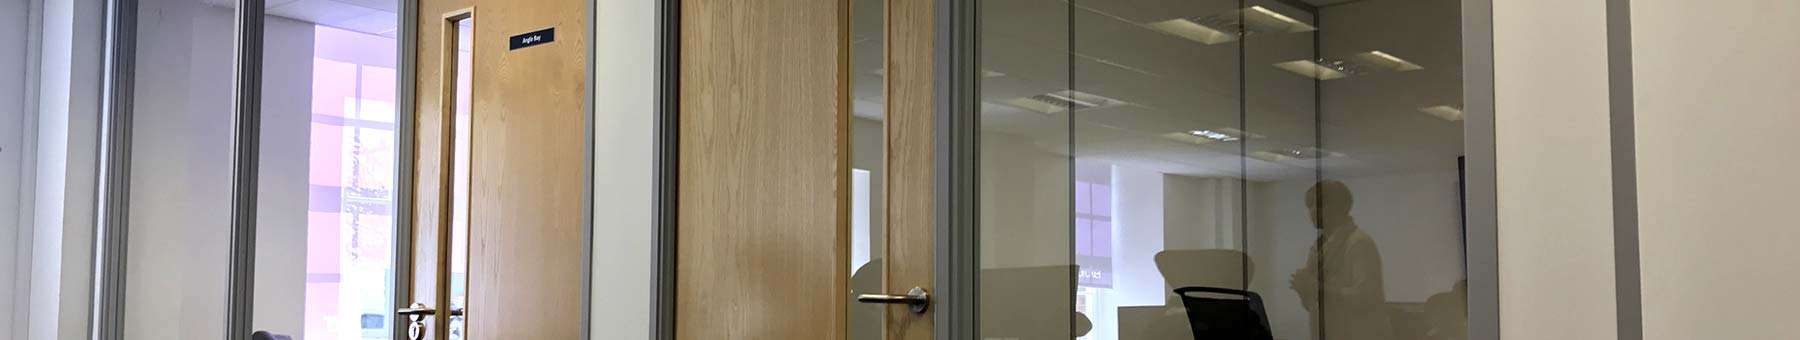 Glass Partitioning in Swindon Office Allows Privacy for Appsbroker